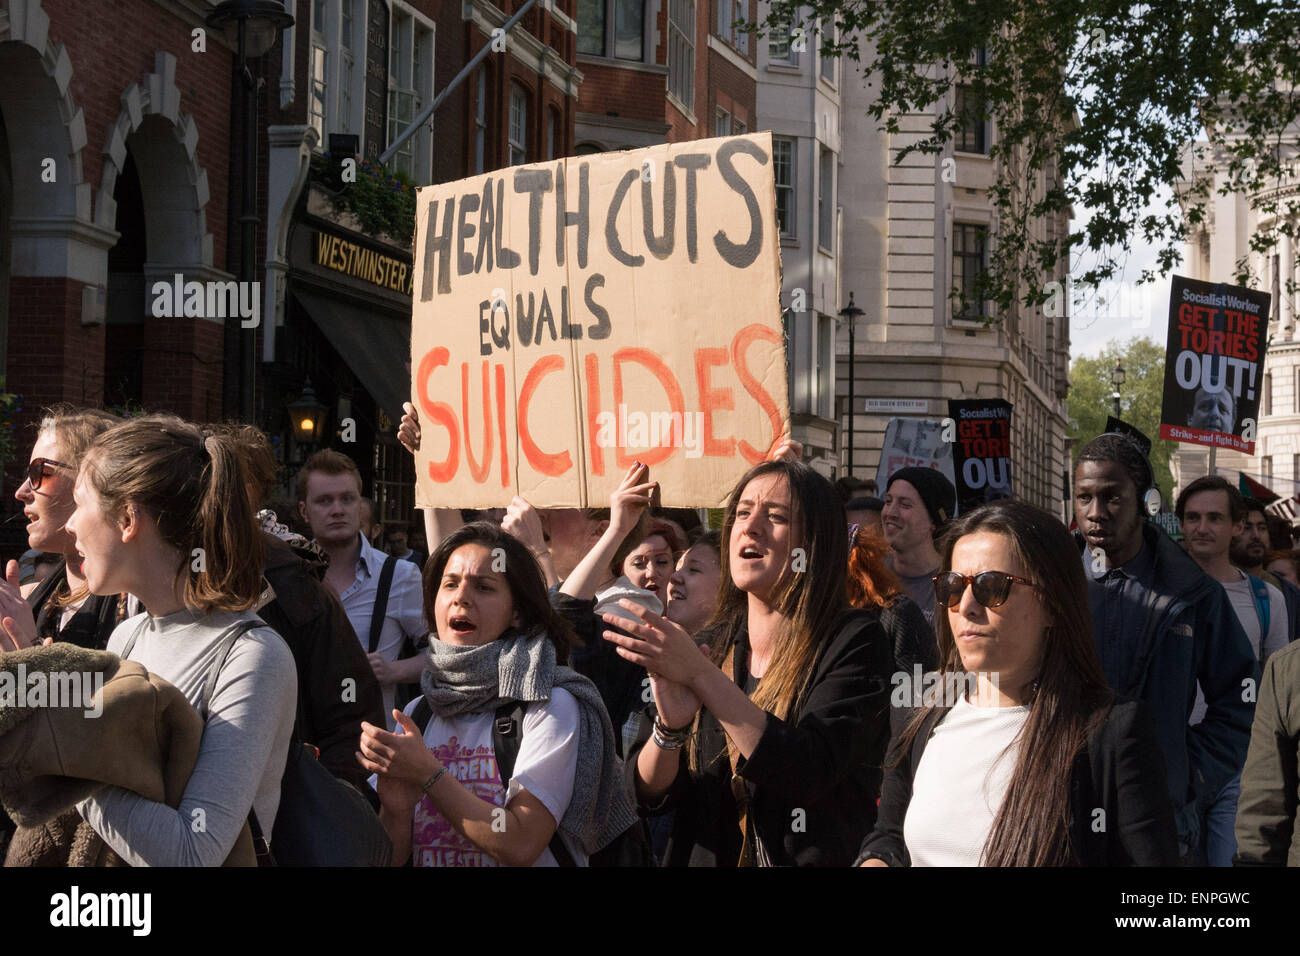 London, 9th May 2015. Protesters hold a placard which reads 'Health cuts equals suicides' as a demonstration - Stock Image